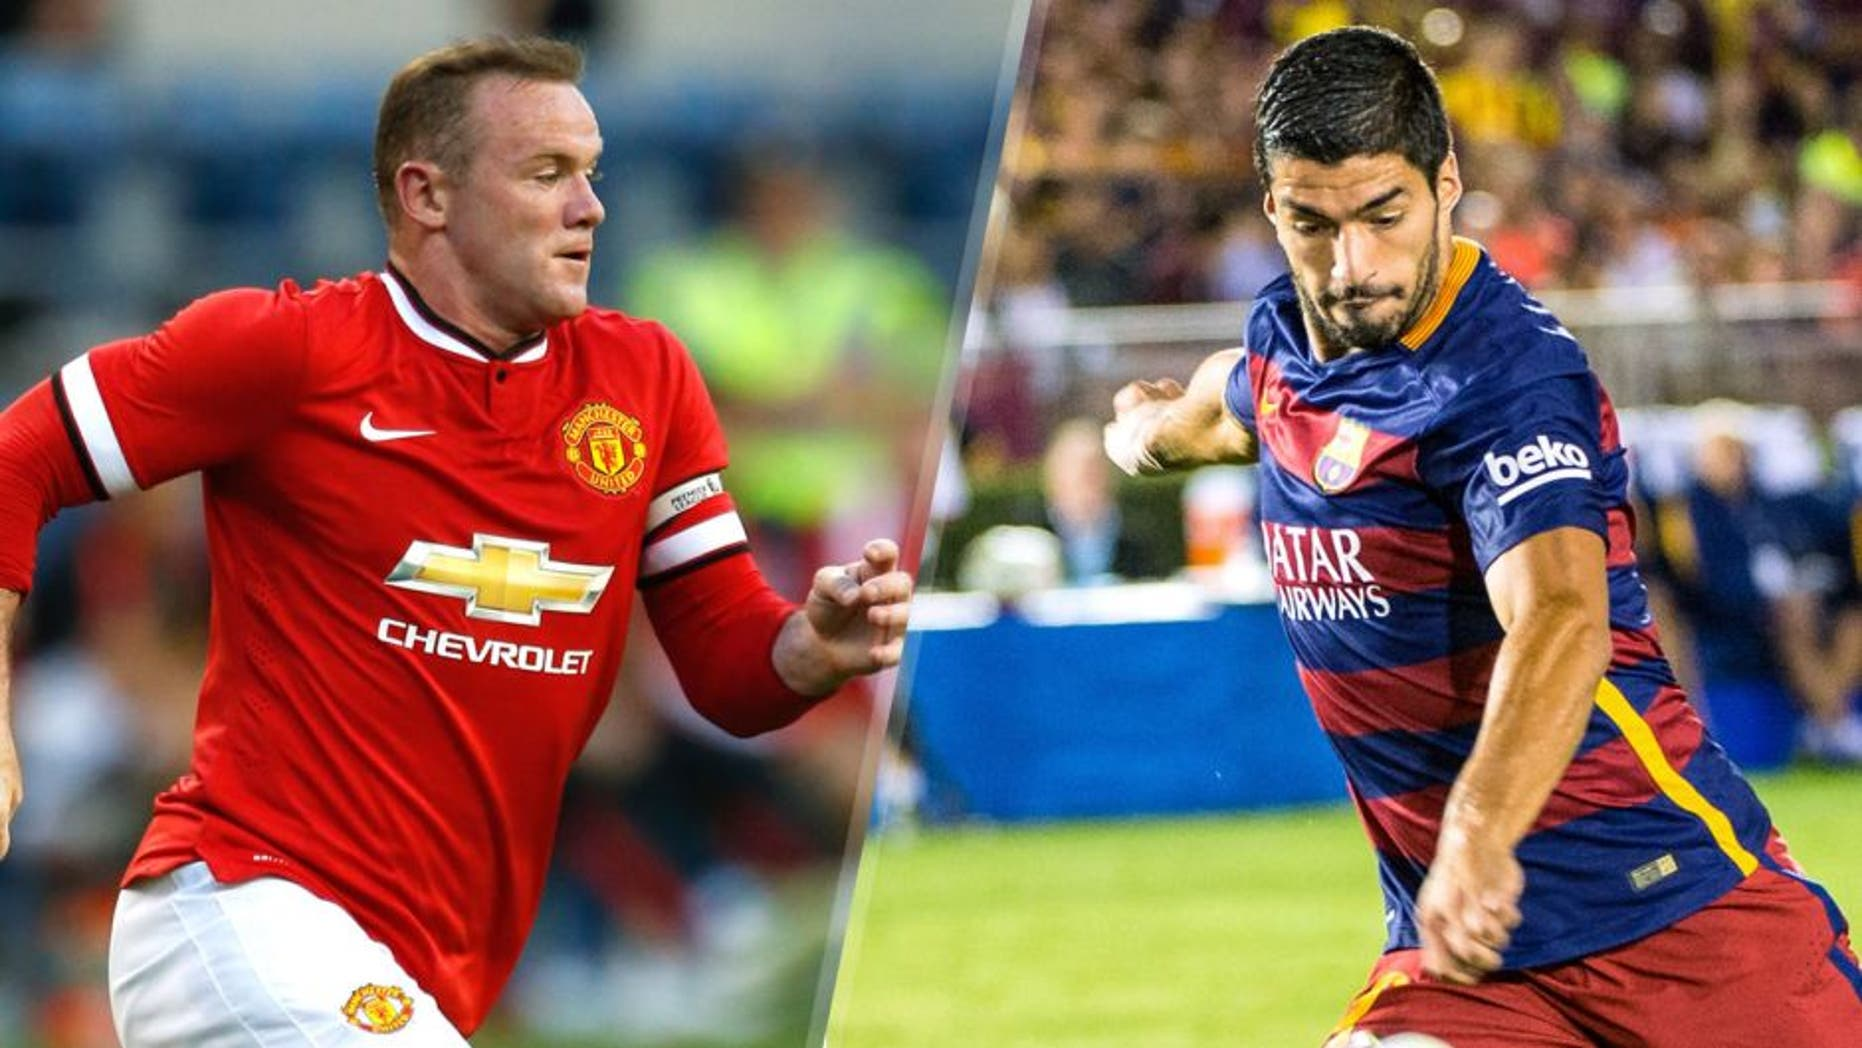 SEATTLE, WA - JULY 17: Wayne Rooney #10 of Manchester United follows the play against against Club America during the International Champions Cup at CenturyLink Field on July 17, 2015 in Seattle, Washington. (Photo by Otto Greule Jr/Getty Images), PASADENA, CA - JULY 21: Luis Suarez #9 of Barcelona takes a shot on goal during the International Champions Cup 2015 match between FC Barcelona and Los Angeles Galaxy at the Rose Bowl on July 21, 2015 in Pasadena, California. Barcelona won the match 2-1 (Photo by Shaun Clark/Getty Images)